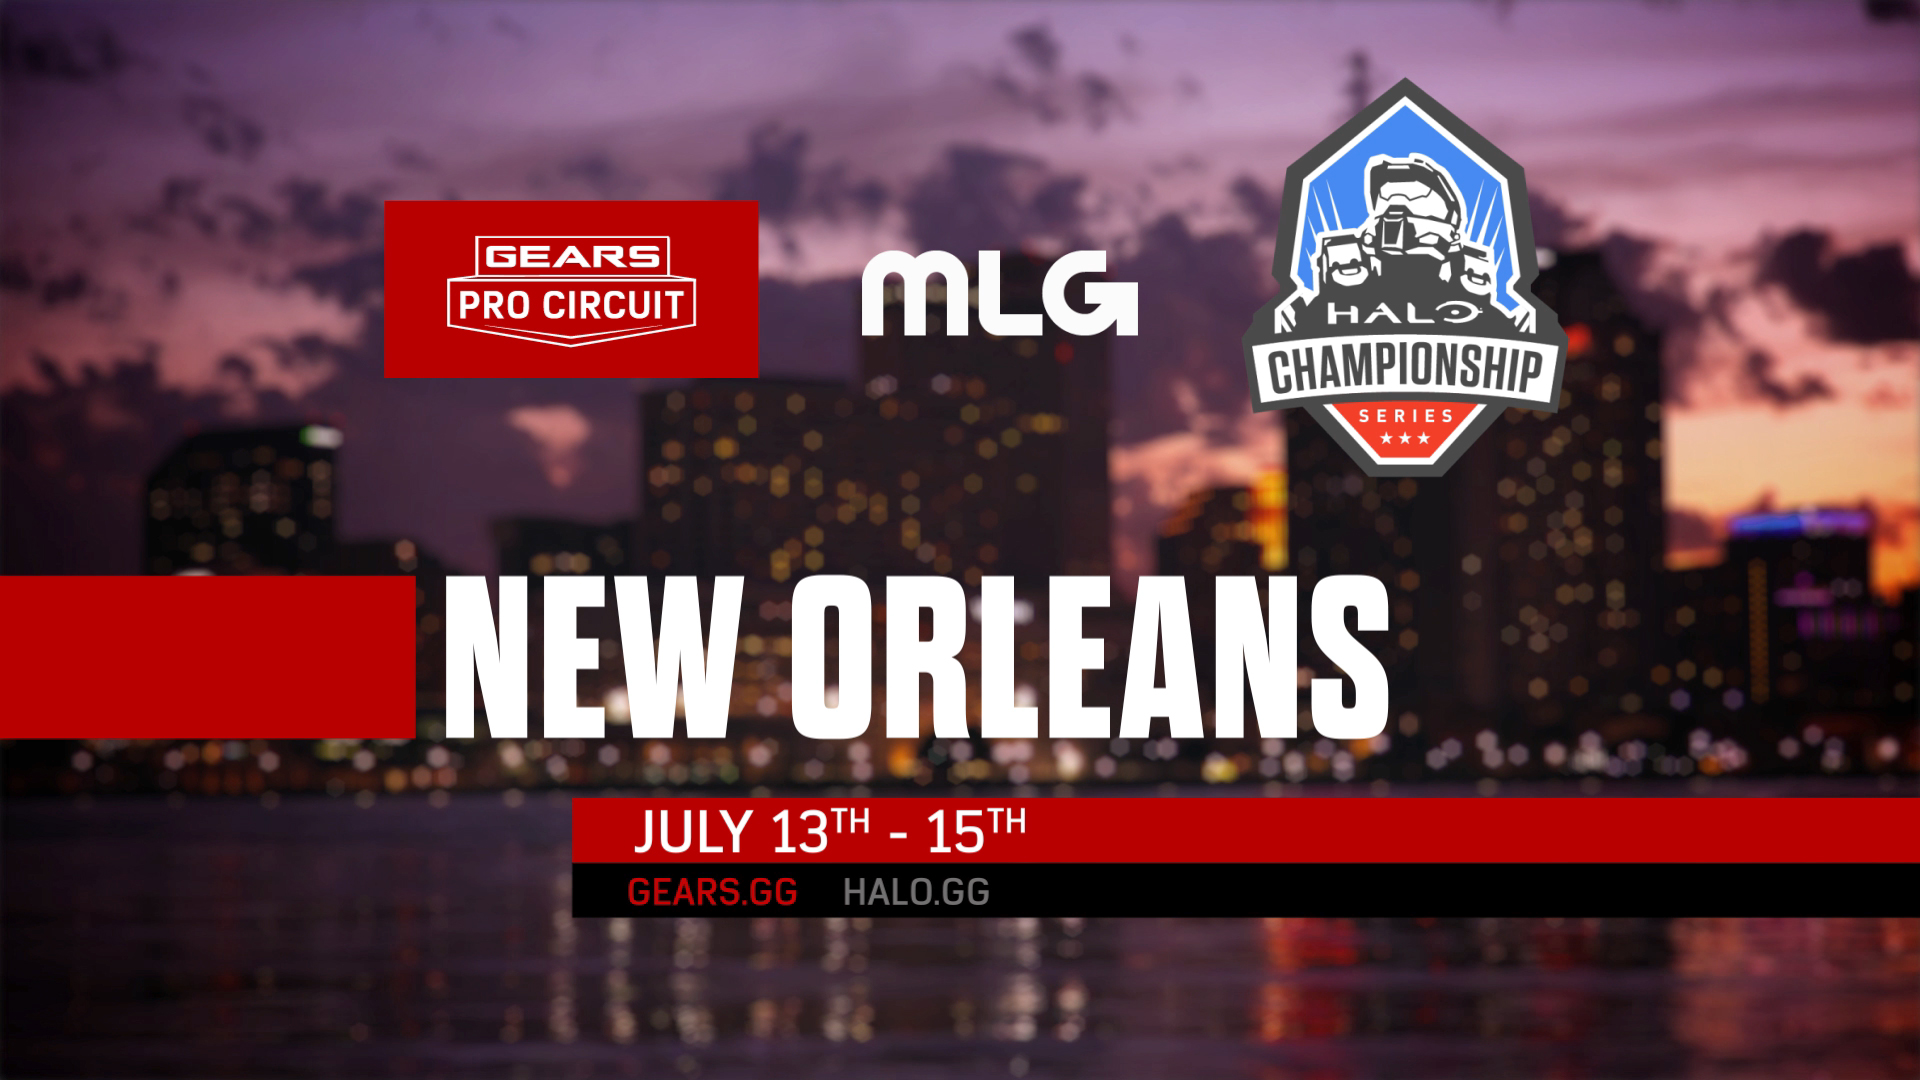 Gears Pro Circuit New Orleans Open